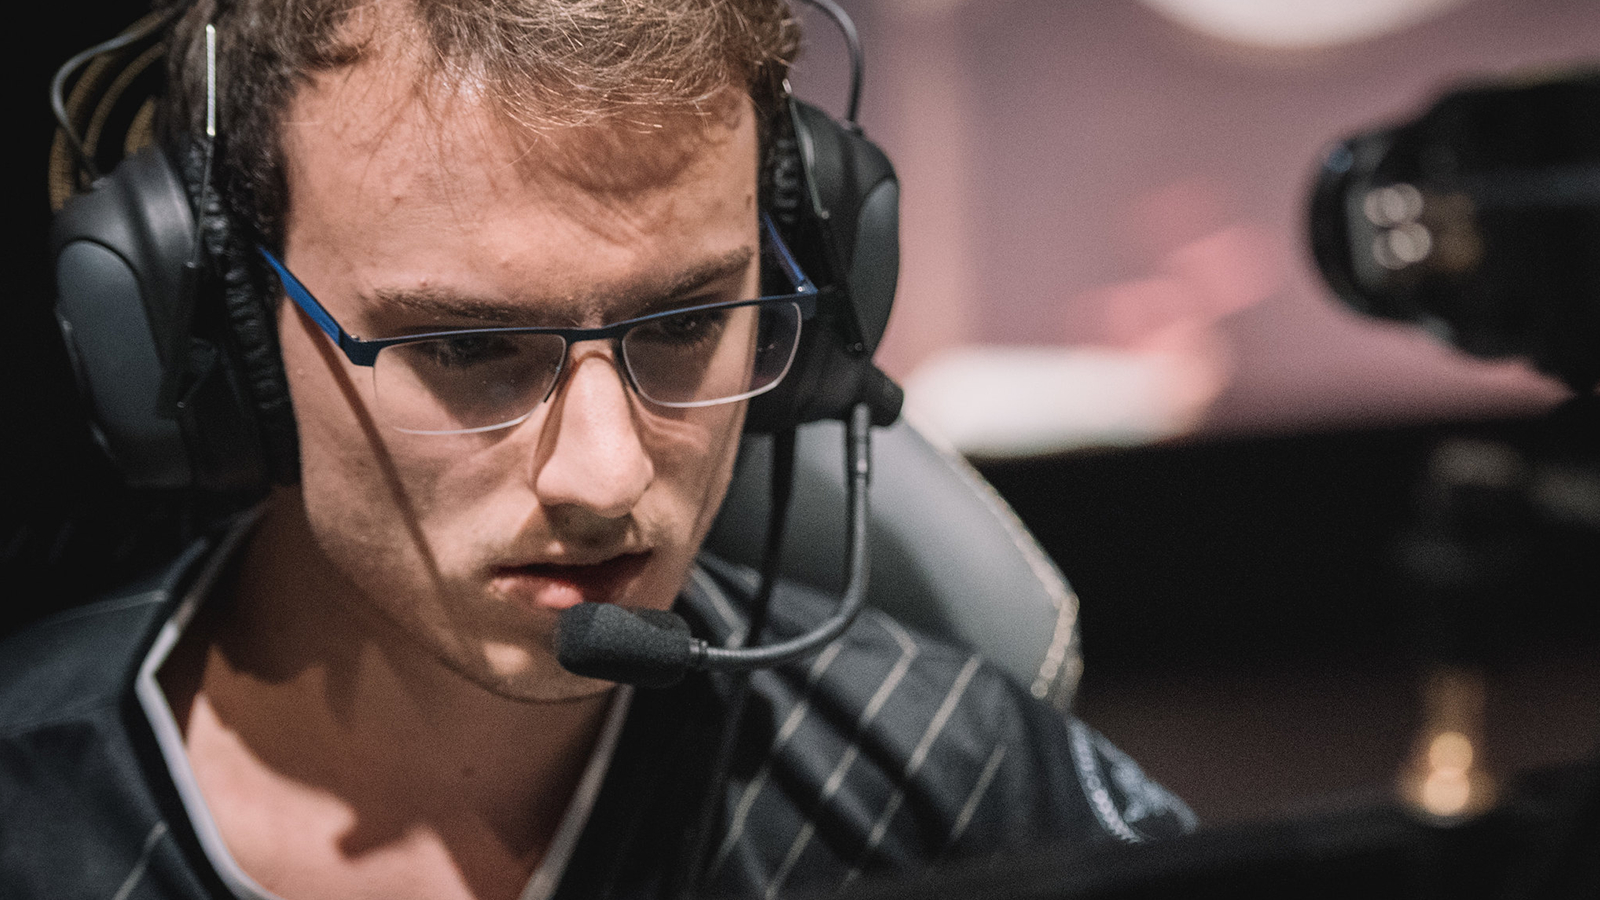 Perkz players on stage for G2 Esports at MSI 2019.